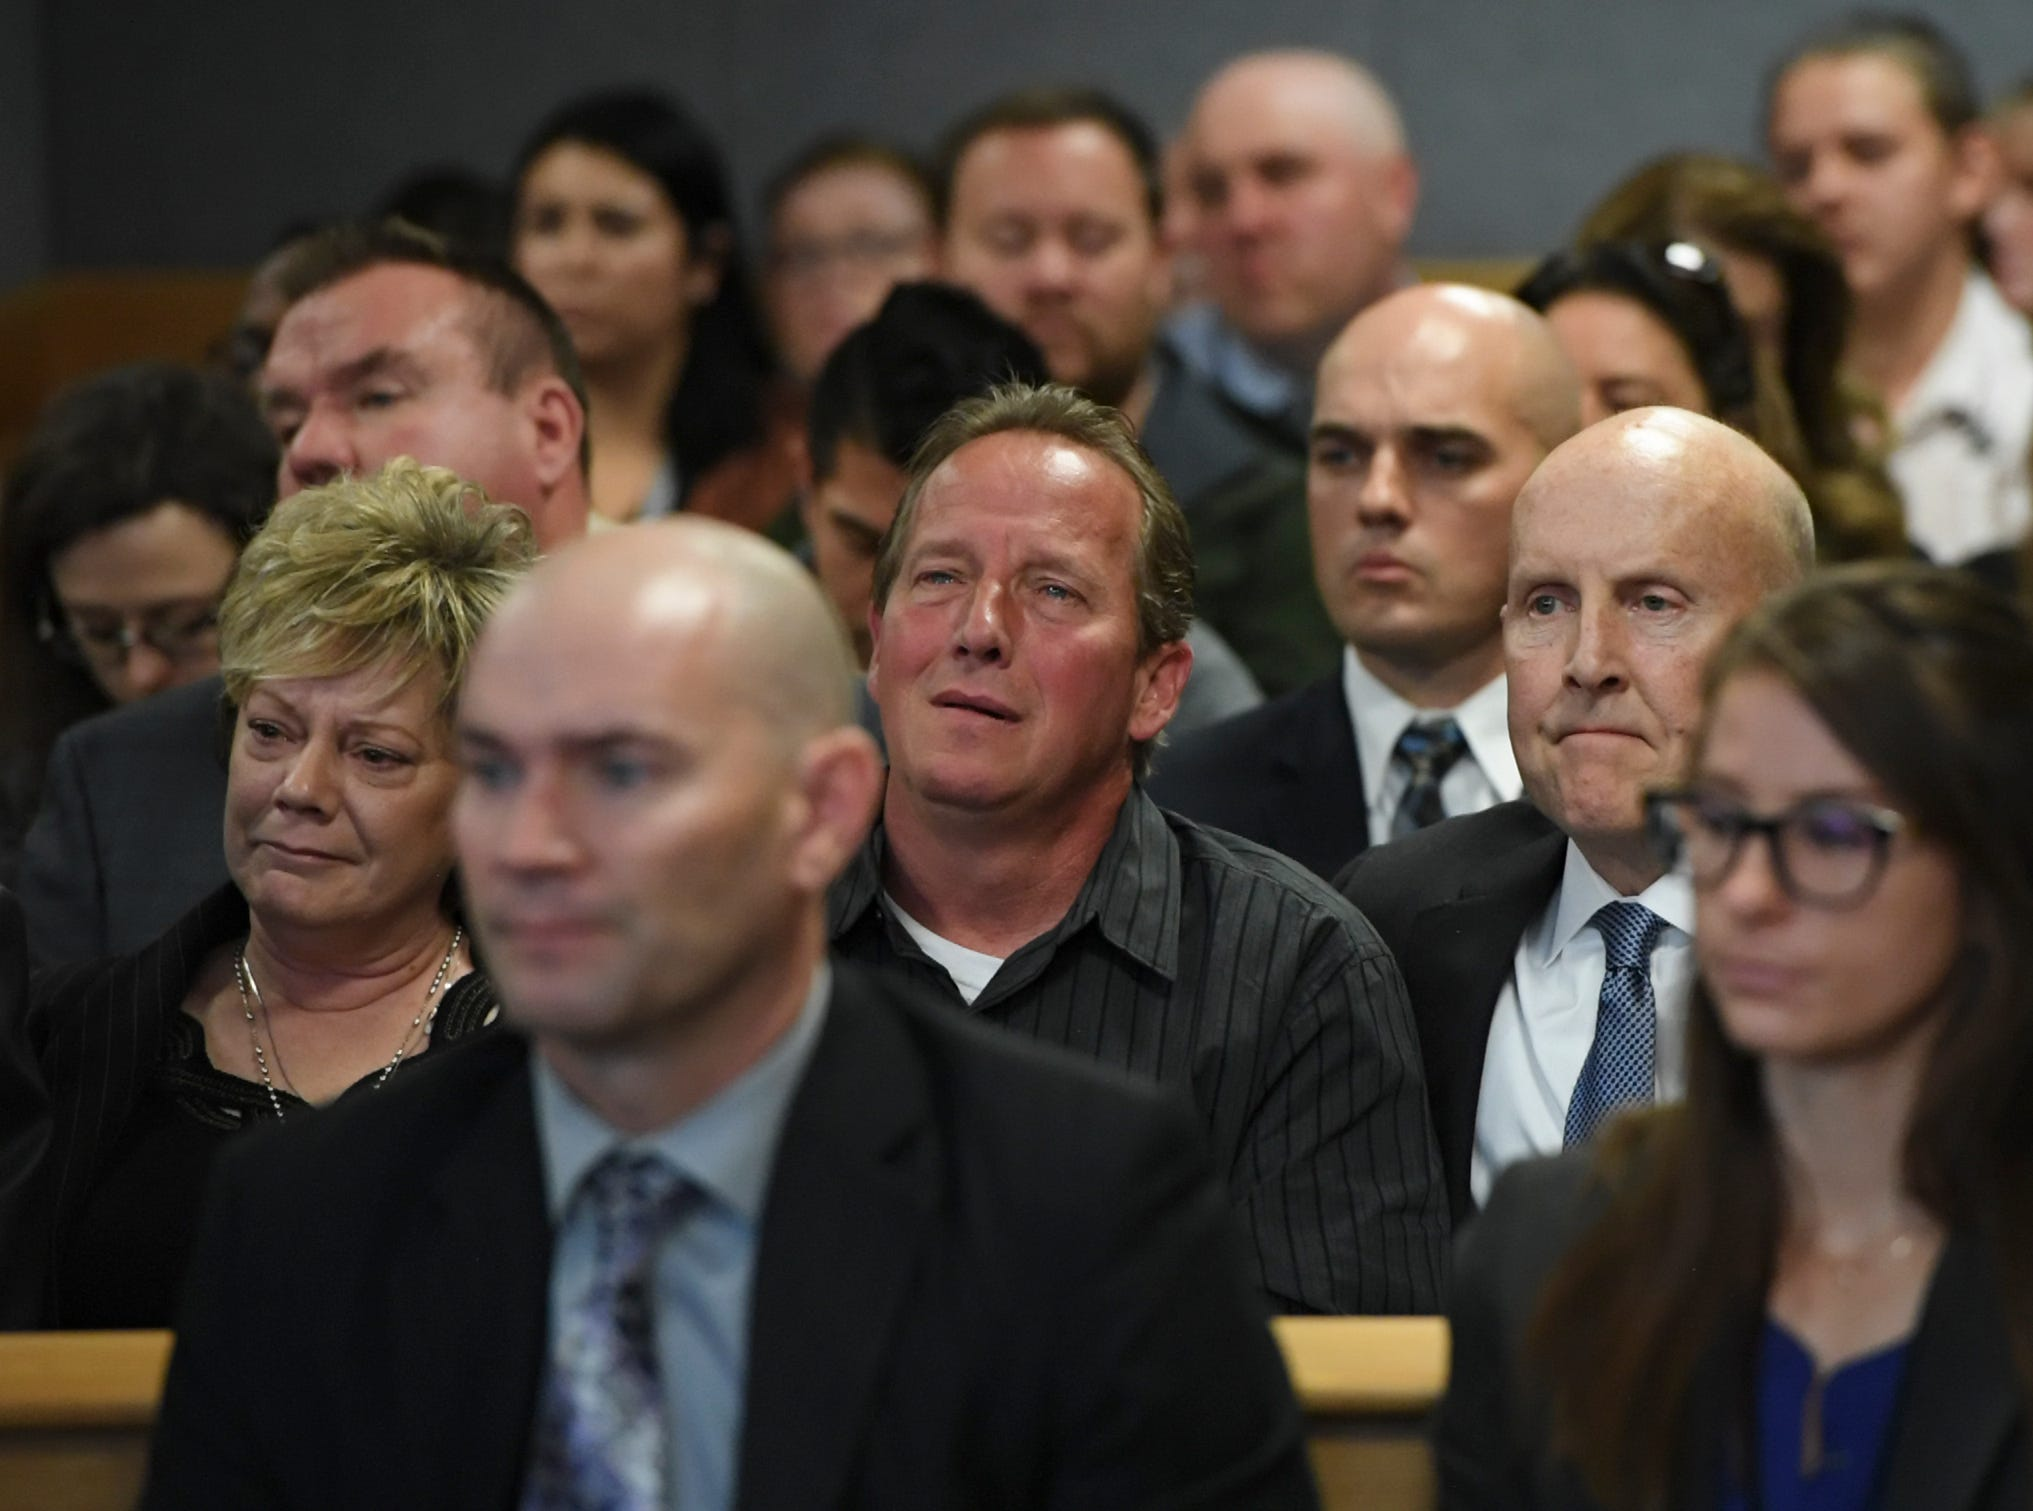 Frank Rzucek, the father of Shanann Watts, center, looks as the judge talks during the sentencing at the Weld County Courthouse on Monday, Nov. 19, 2018 in Greeley, Colo. Christopher Watts received three consecutive life sentences without a chance at parole on Monday, nearly two weeks after pleading guilty to avoid the death penalty. (RJ Sangosti/The Denver Post via AP, Pool)